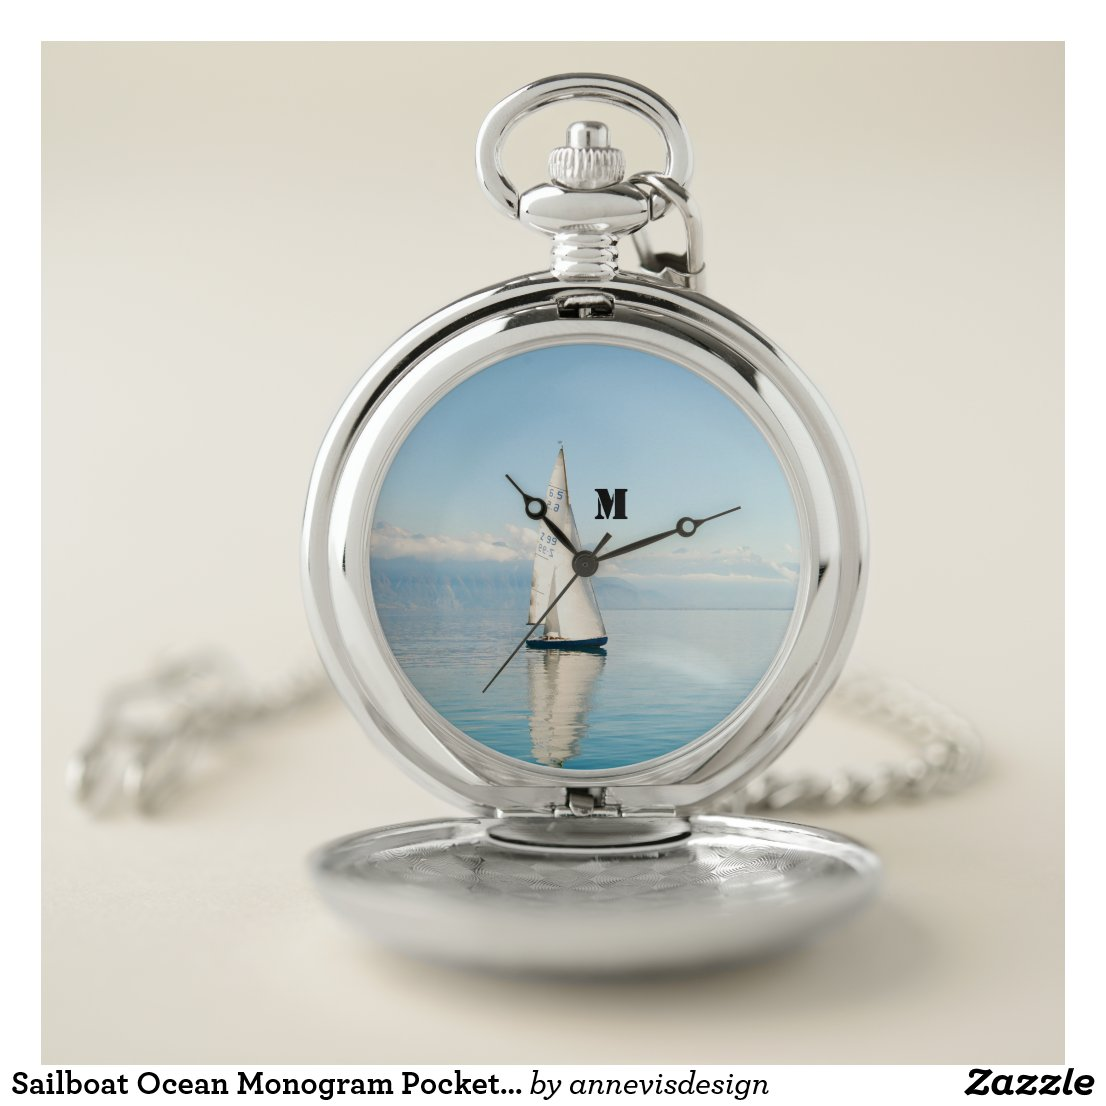 Sailboat Ocean Monogram Pocket Watch